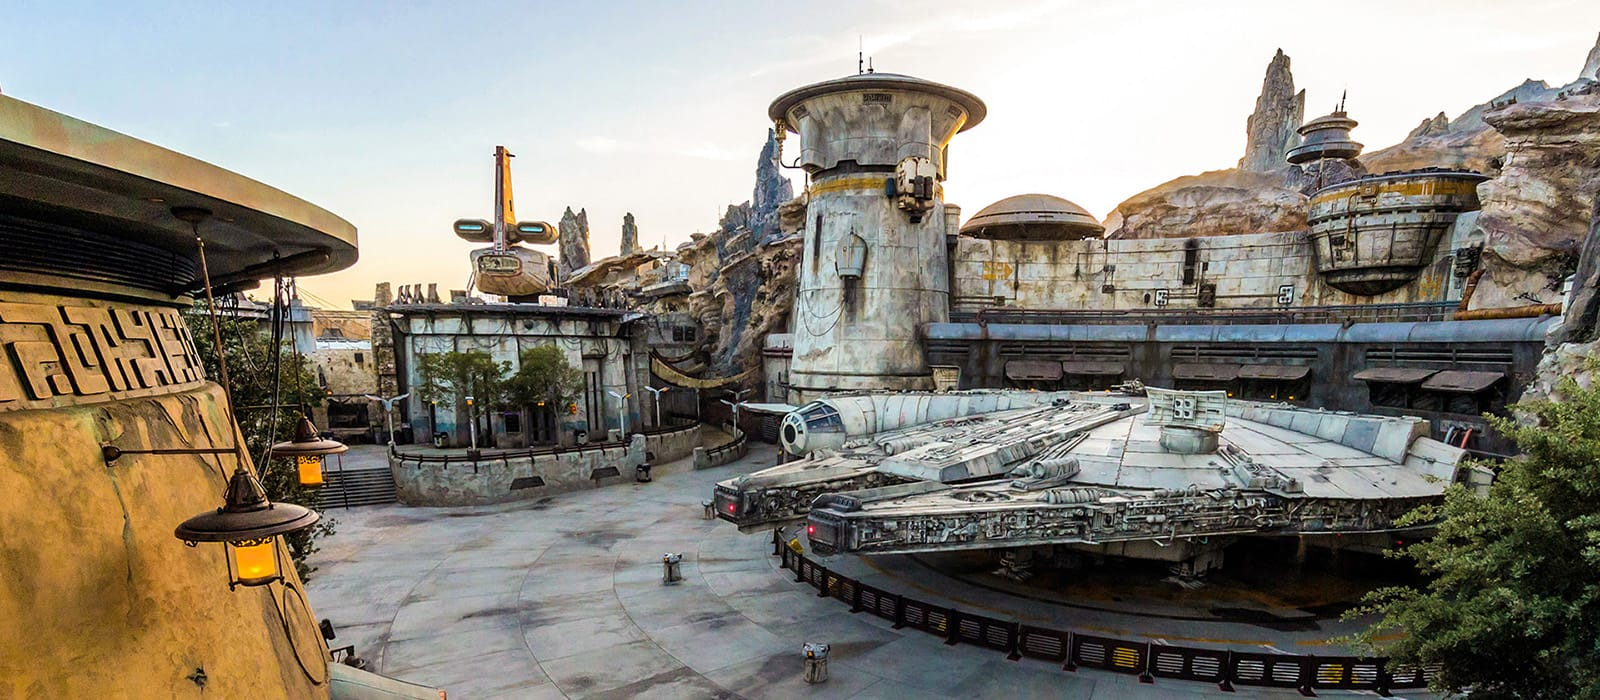 Star Wars Land <br> in Disney World